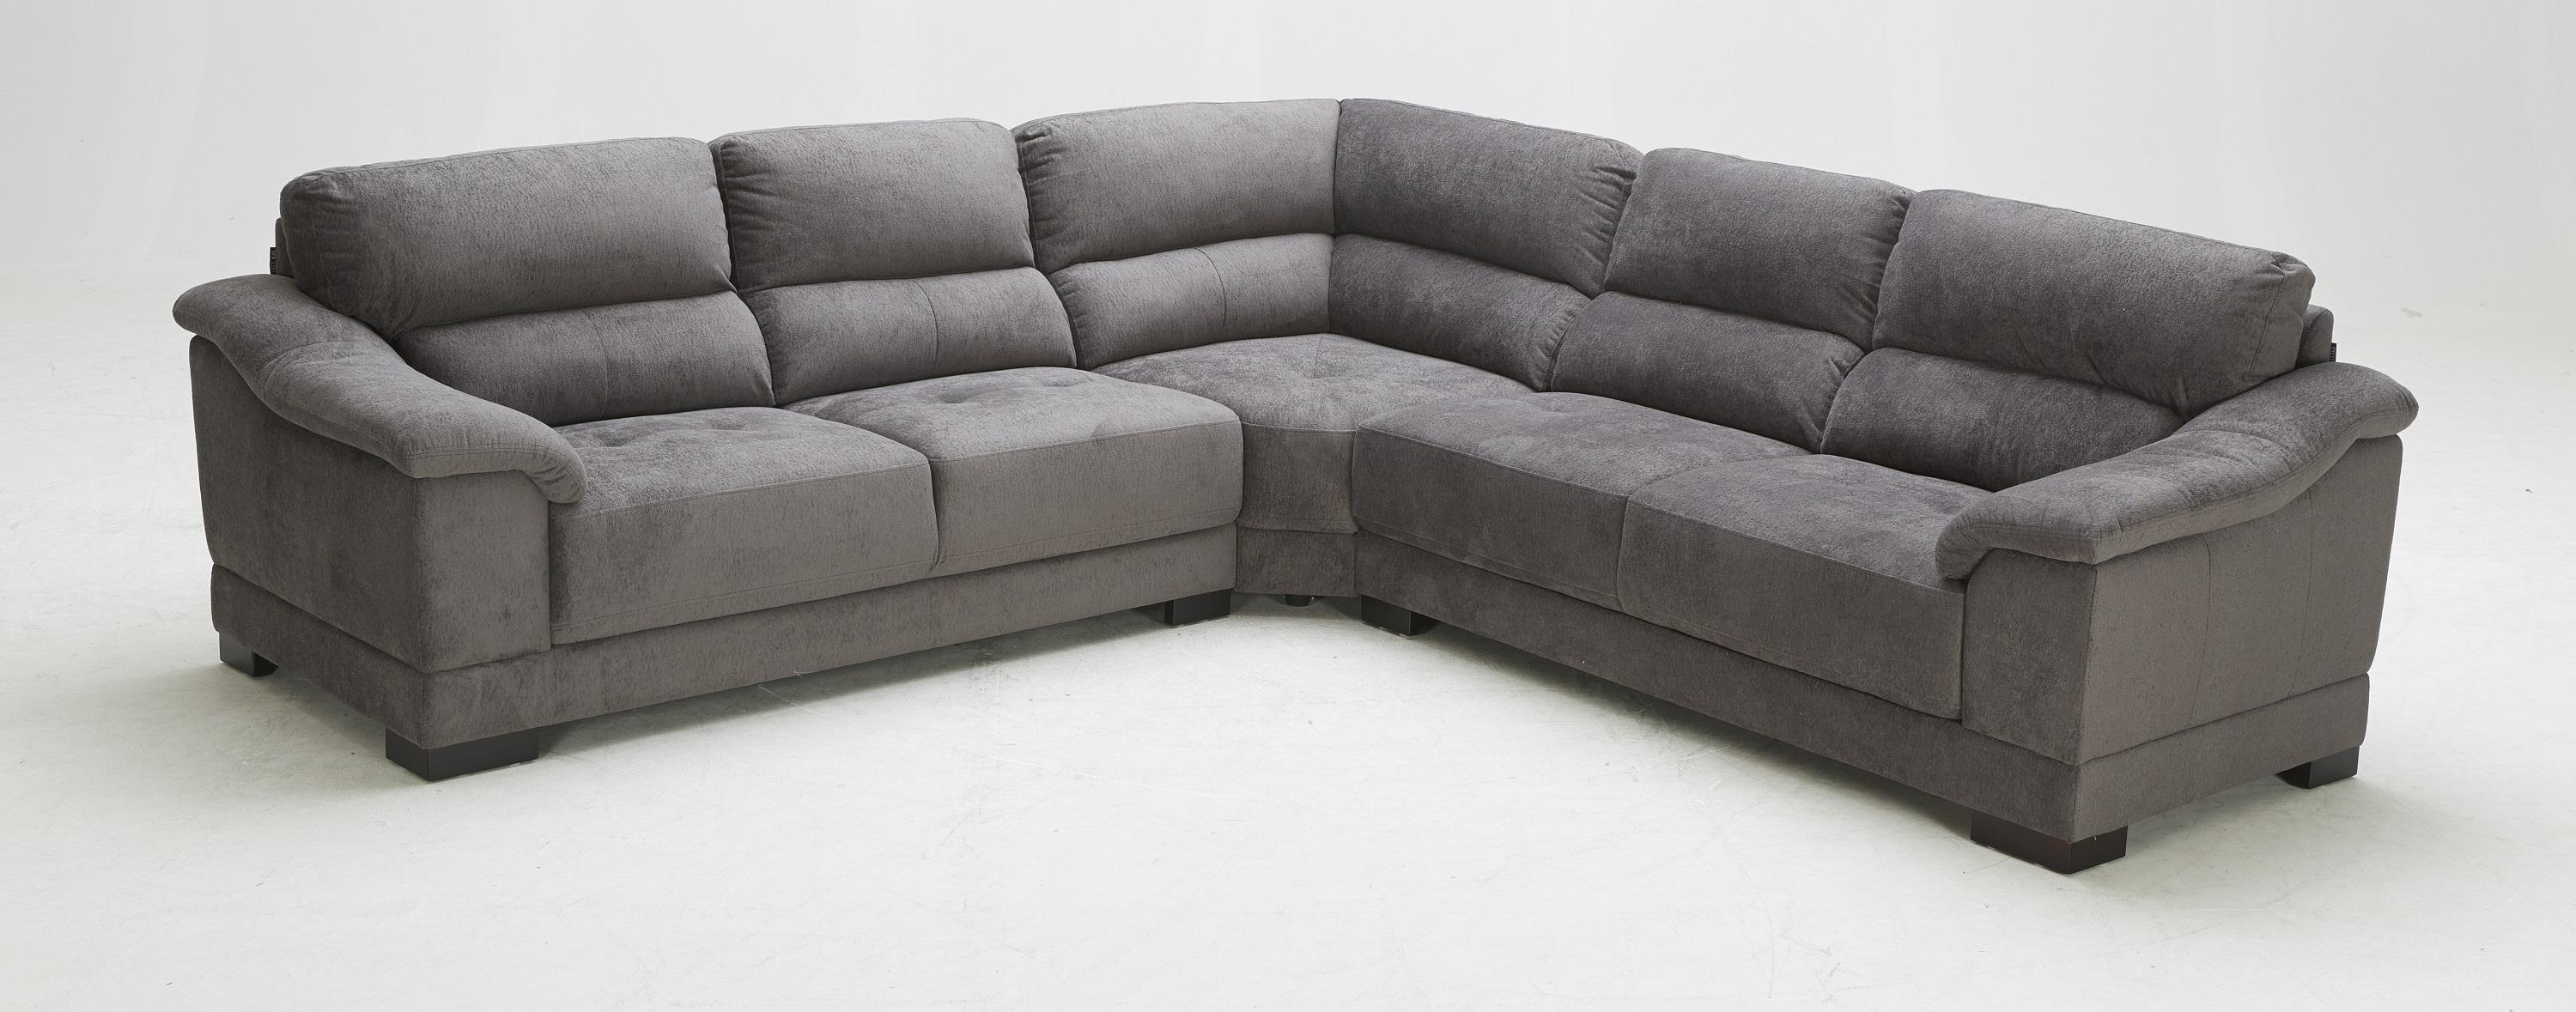 1821 Transitional Sectional Sofa at Becker Furniture